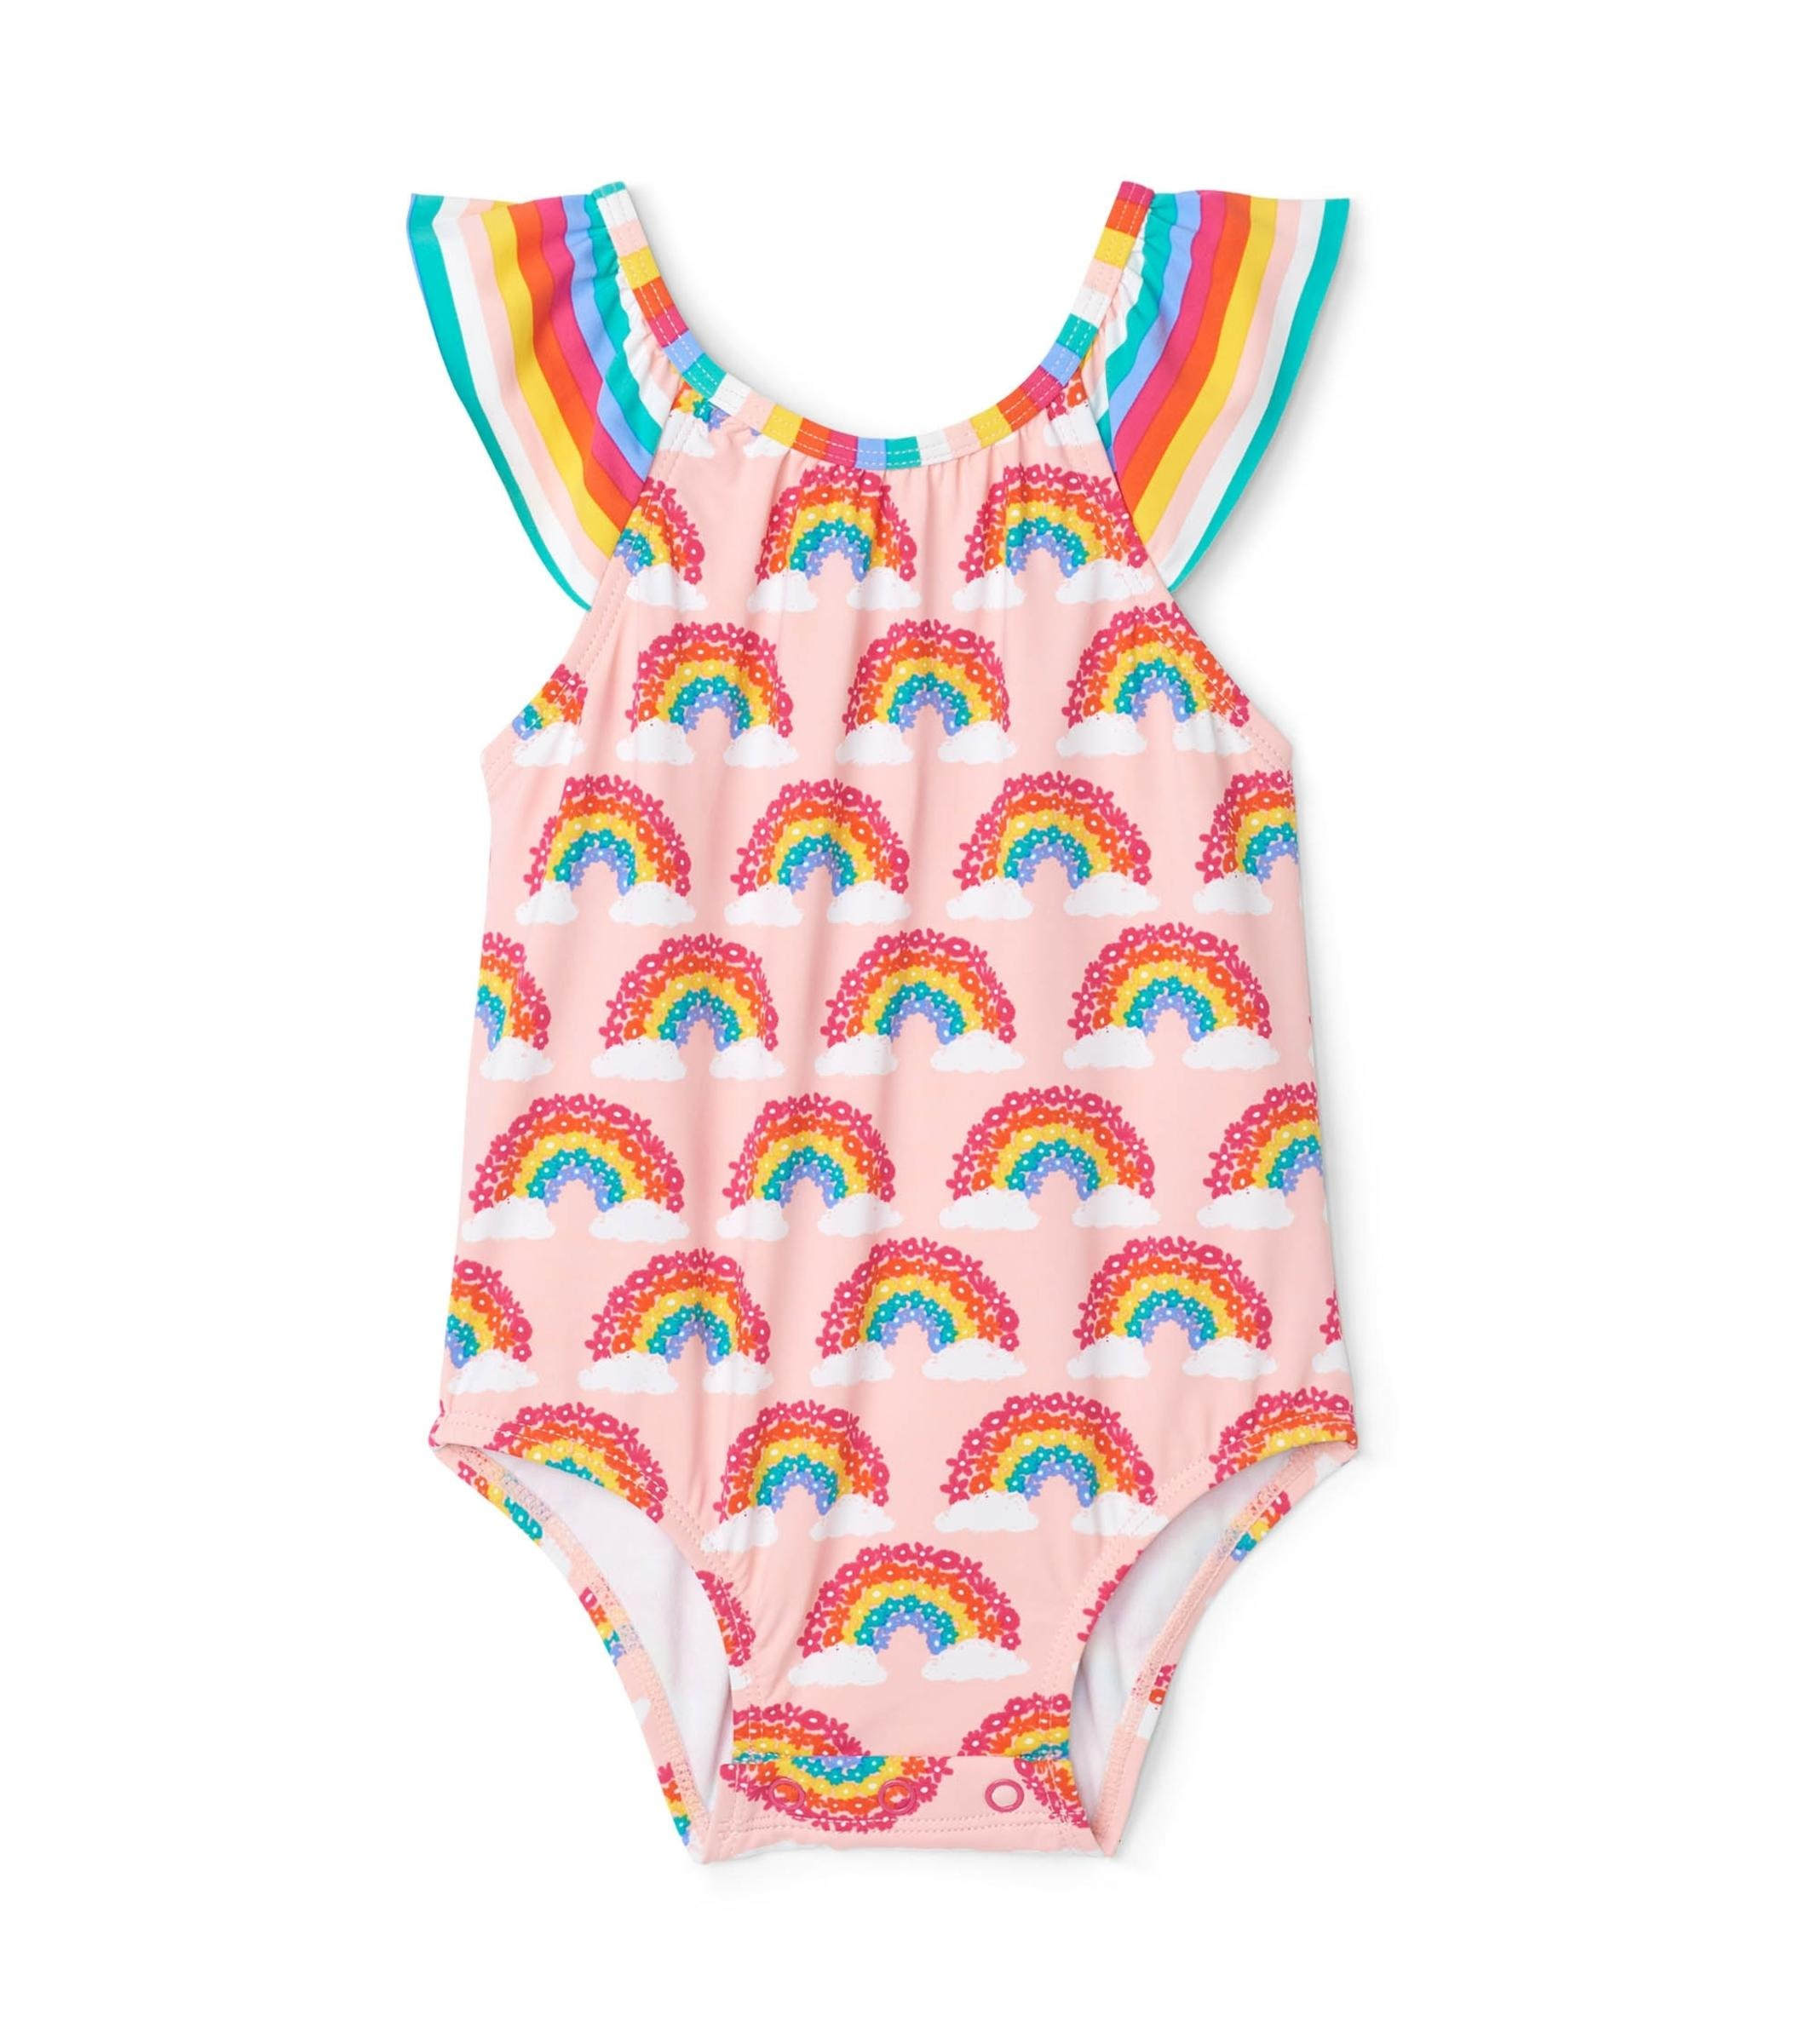 Hatley Baby Ruffle Swimsuit - Magical Rainbows